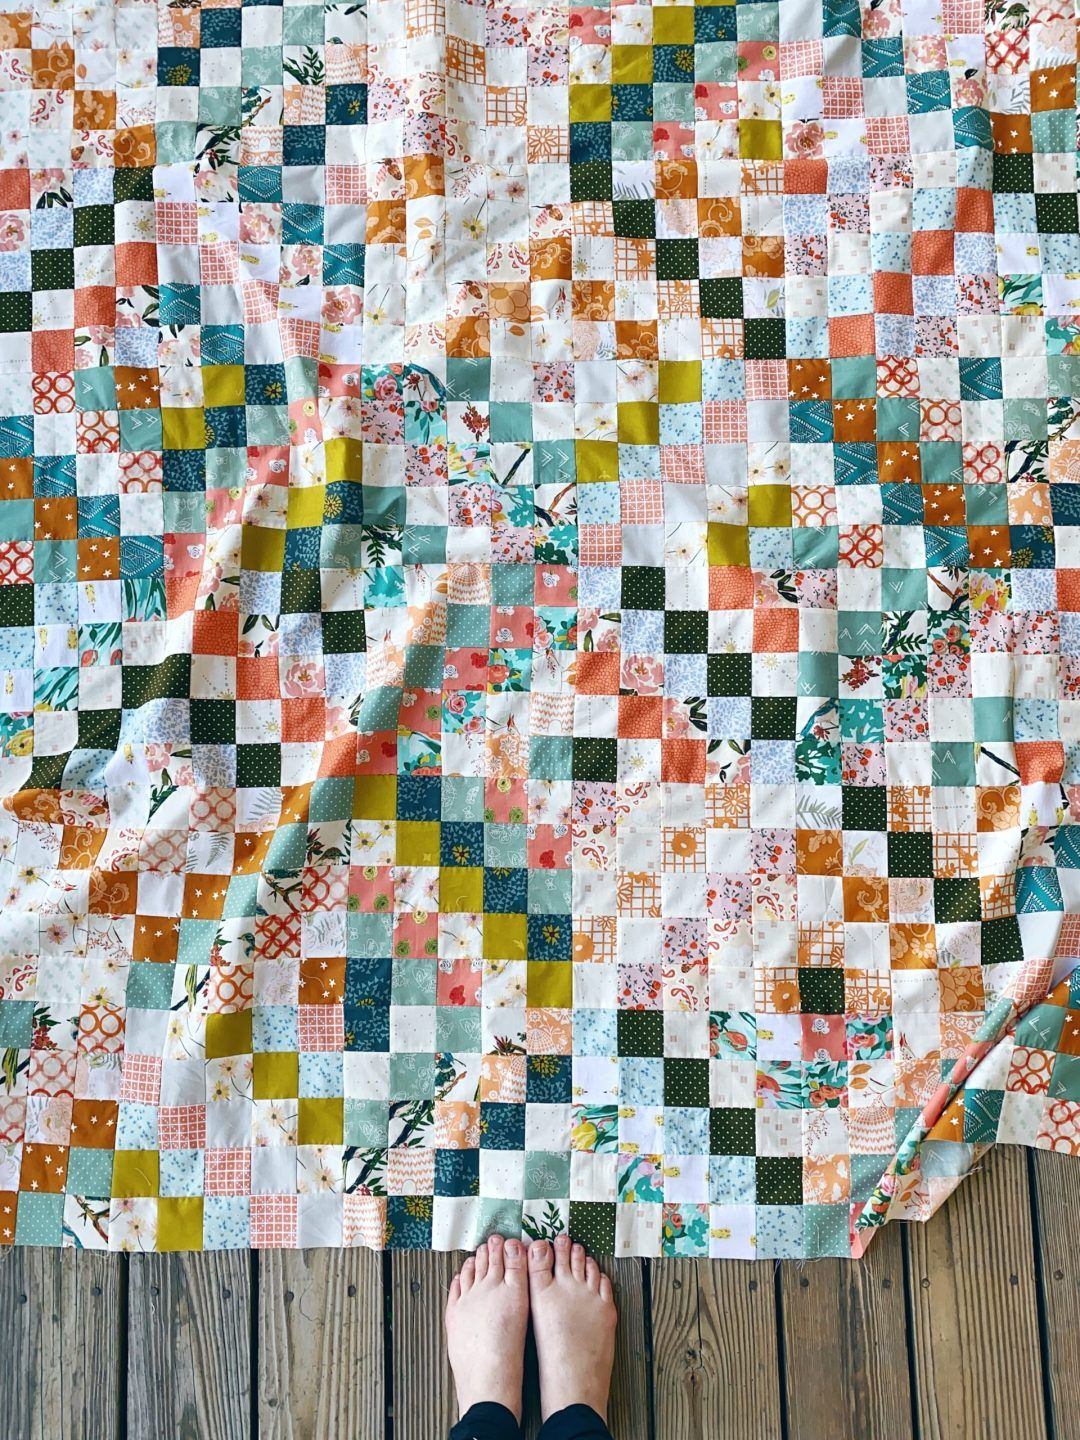 Quilt Reveal Trippy Quilt 4 Green And Orange And A Hint Of Silver In 2020 Quilts Scrappy Quilt Patterns Scrappy Quilts